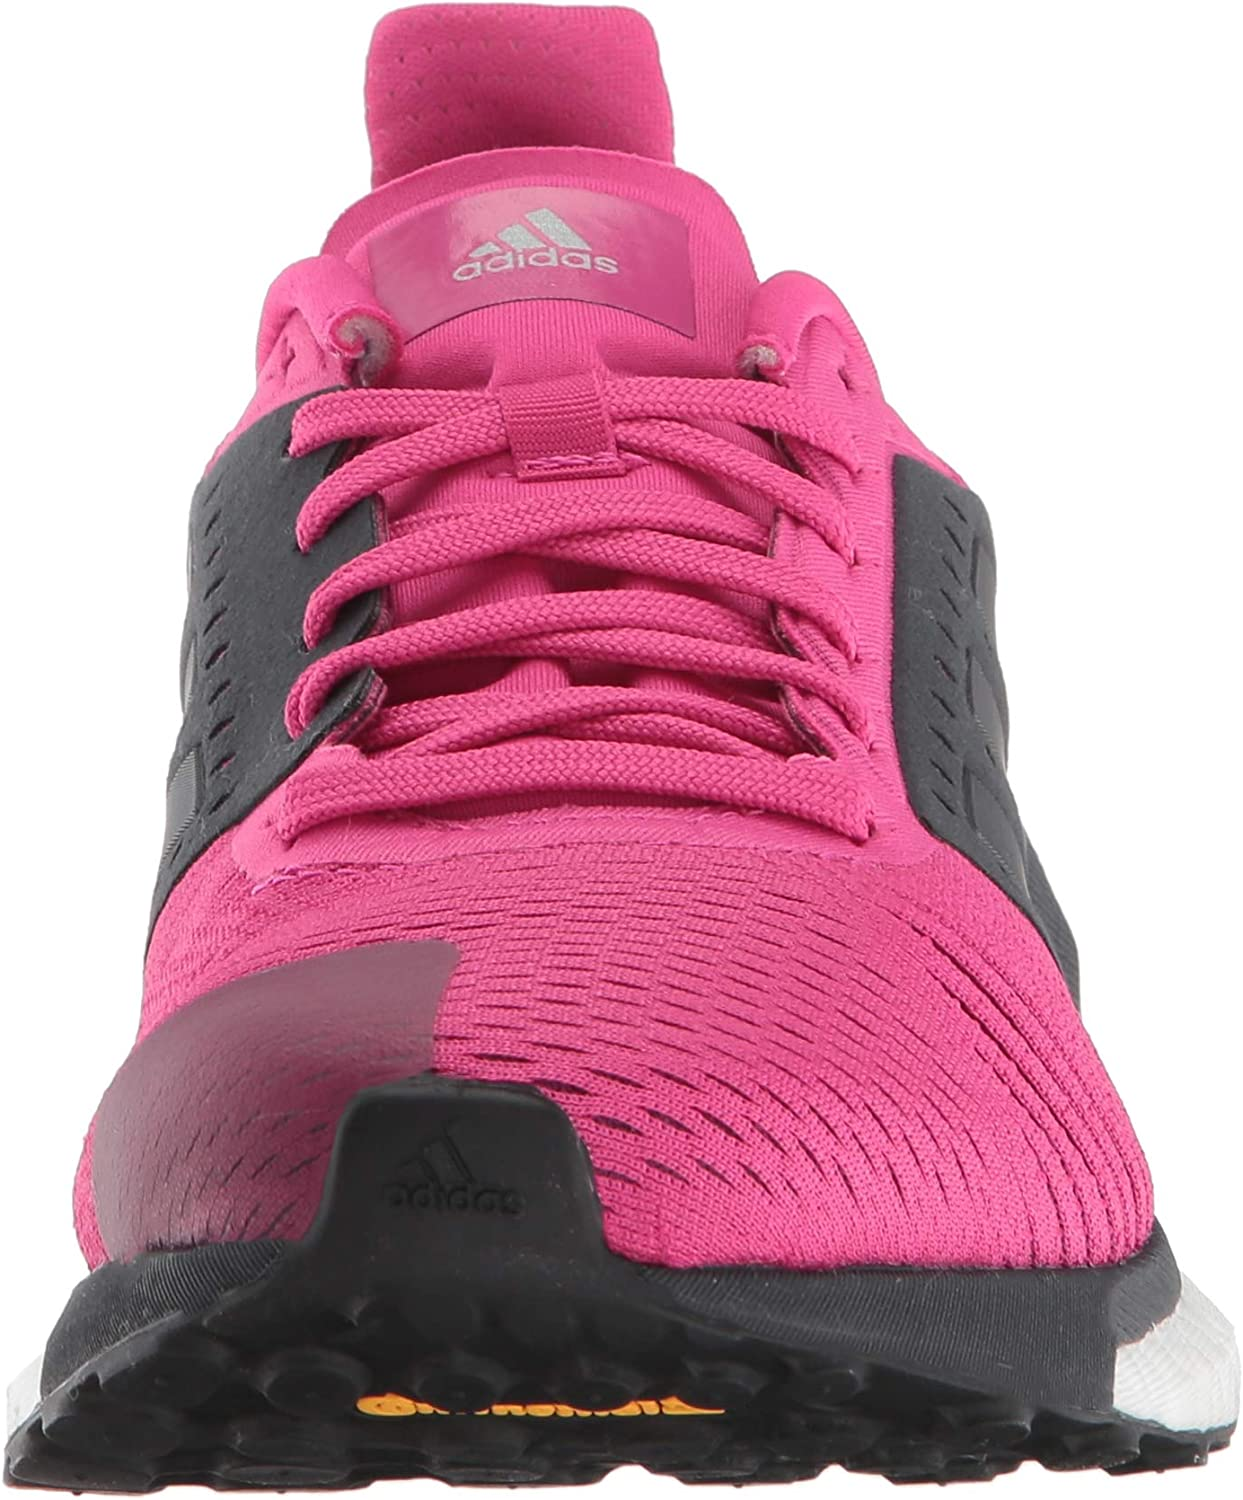 adidas Originals Women's Solar Glide ST Running Shoe Real Magenta/Carbon/White